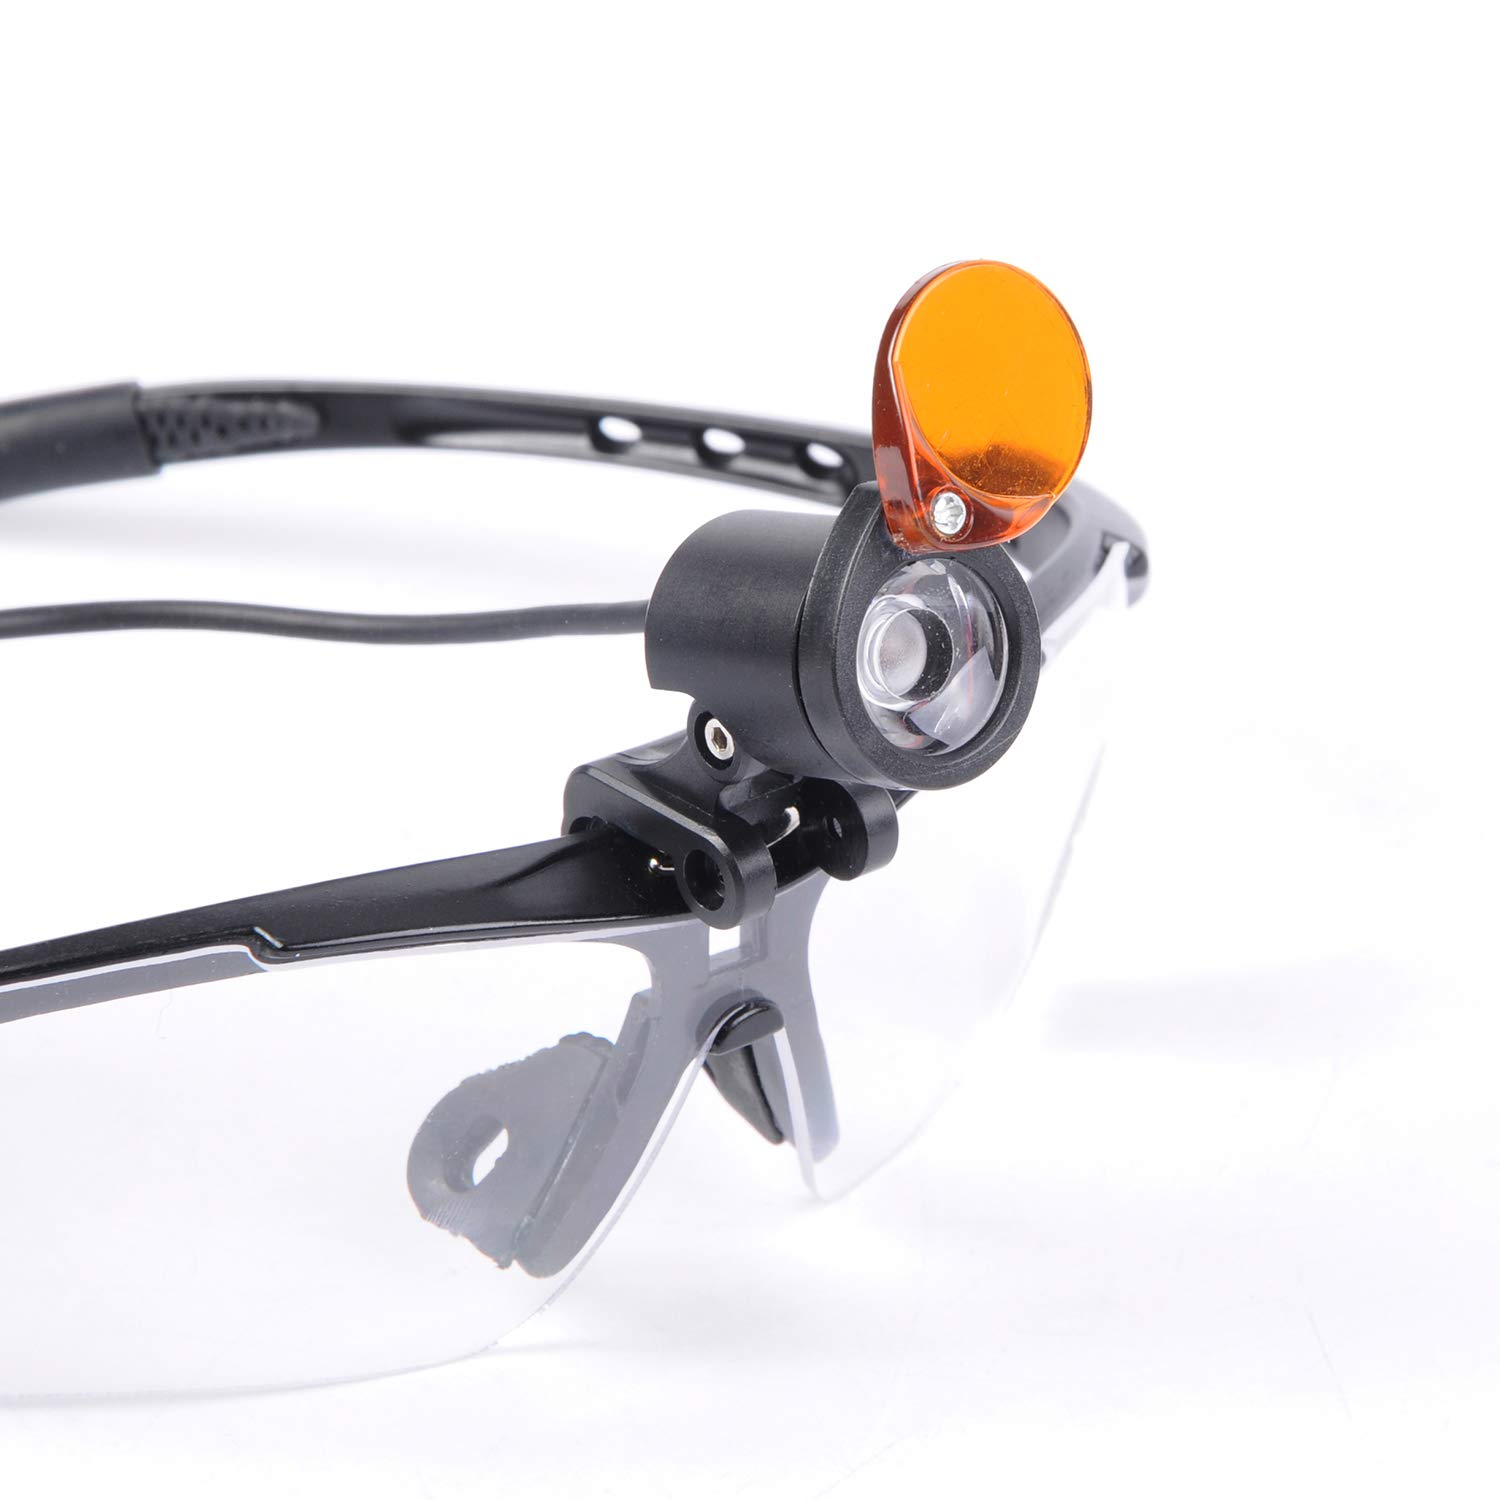 Wotefusi 1W LED Headlight with Yellow Filter Medical Surgical Head Lamp for Dental Stomatology by Wotefusi (Image #3)